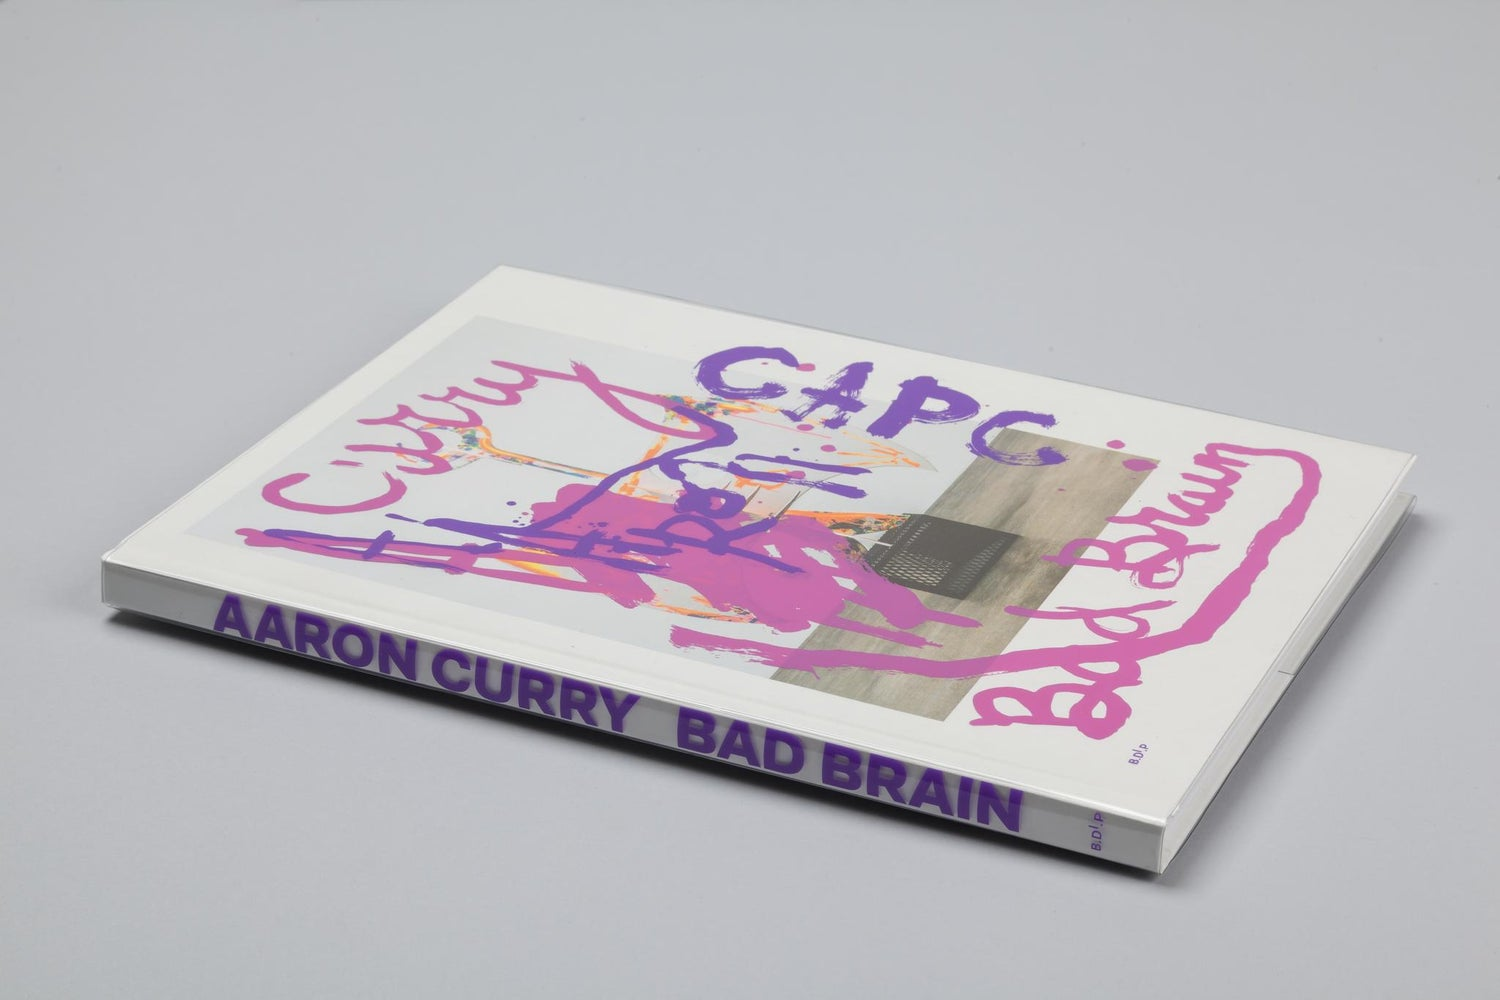 Image of Aaron Curry - Bad Brain